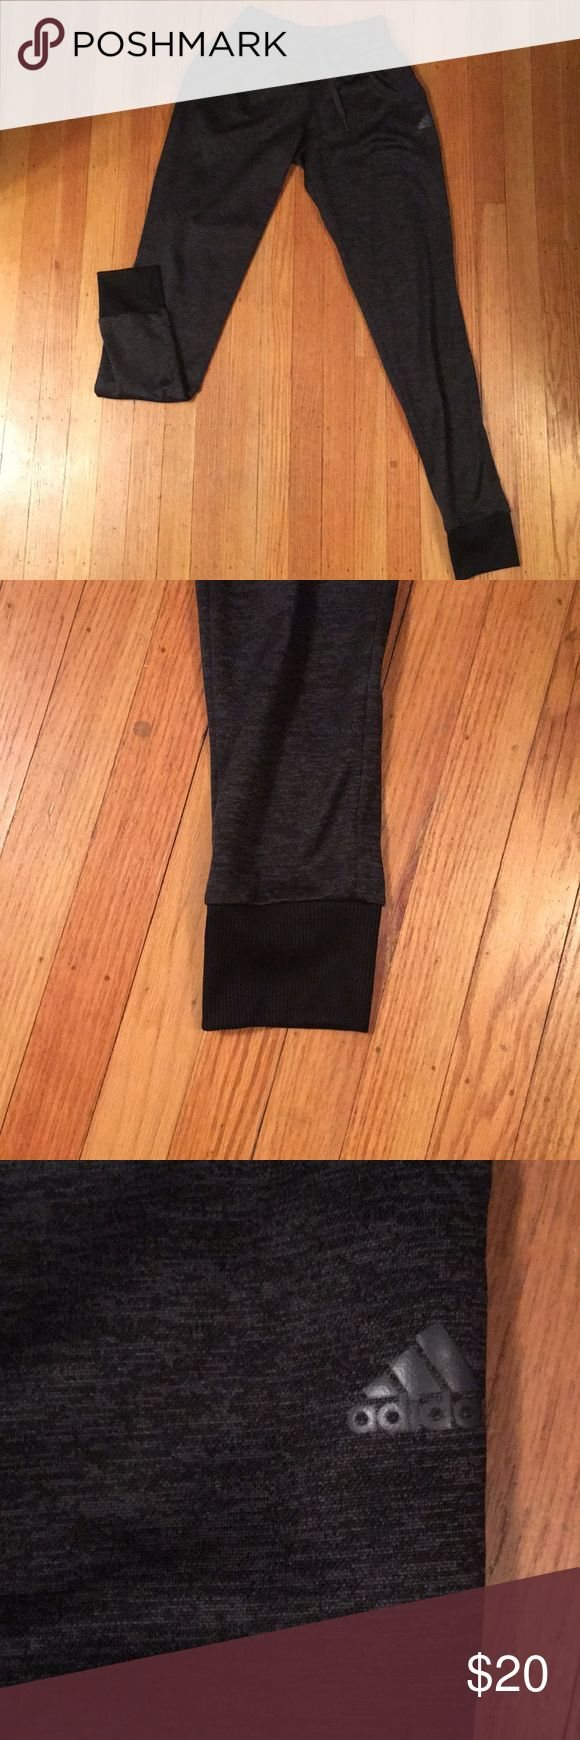 Men's Adidas joggers Men's Adidas joggers. Size XS. Elastic bottoms. Elastic waist. Front pockets. Smoke and pet free home. Near perfect and new condition. adidas Pants Sweatpants & Joggers